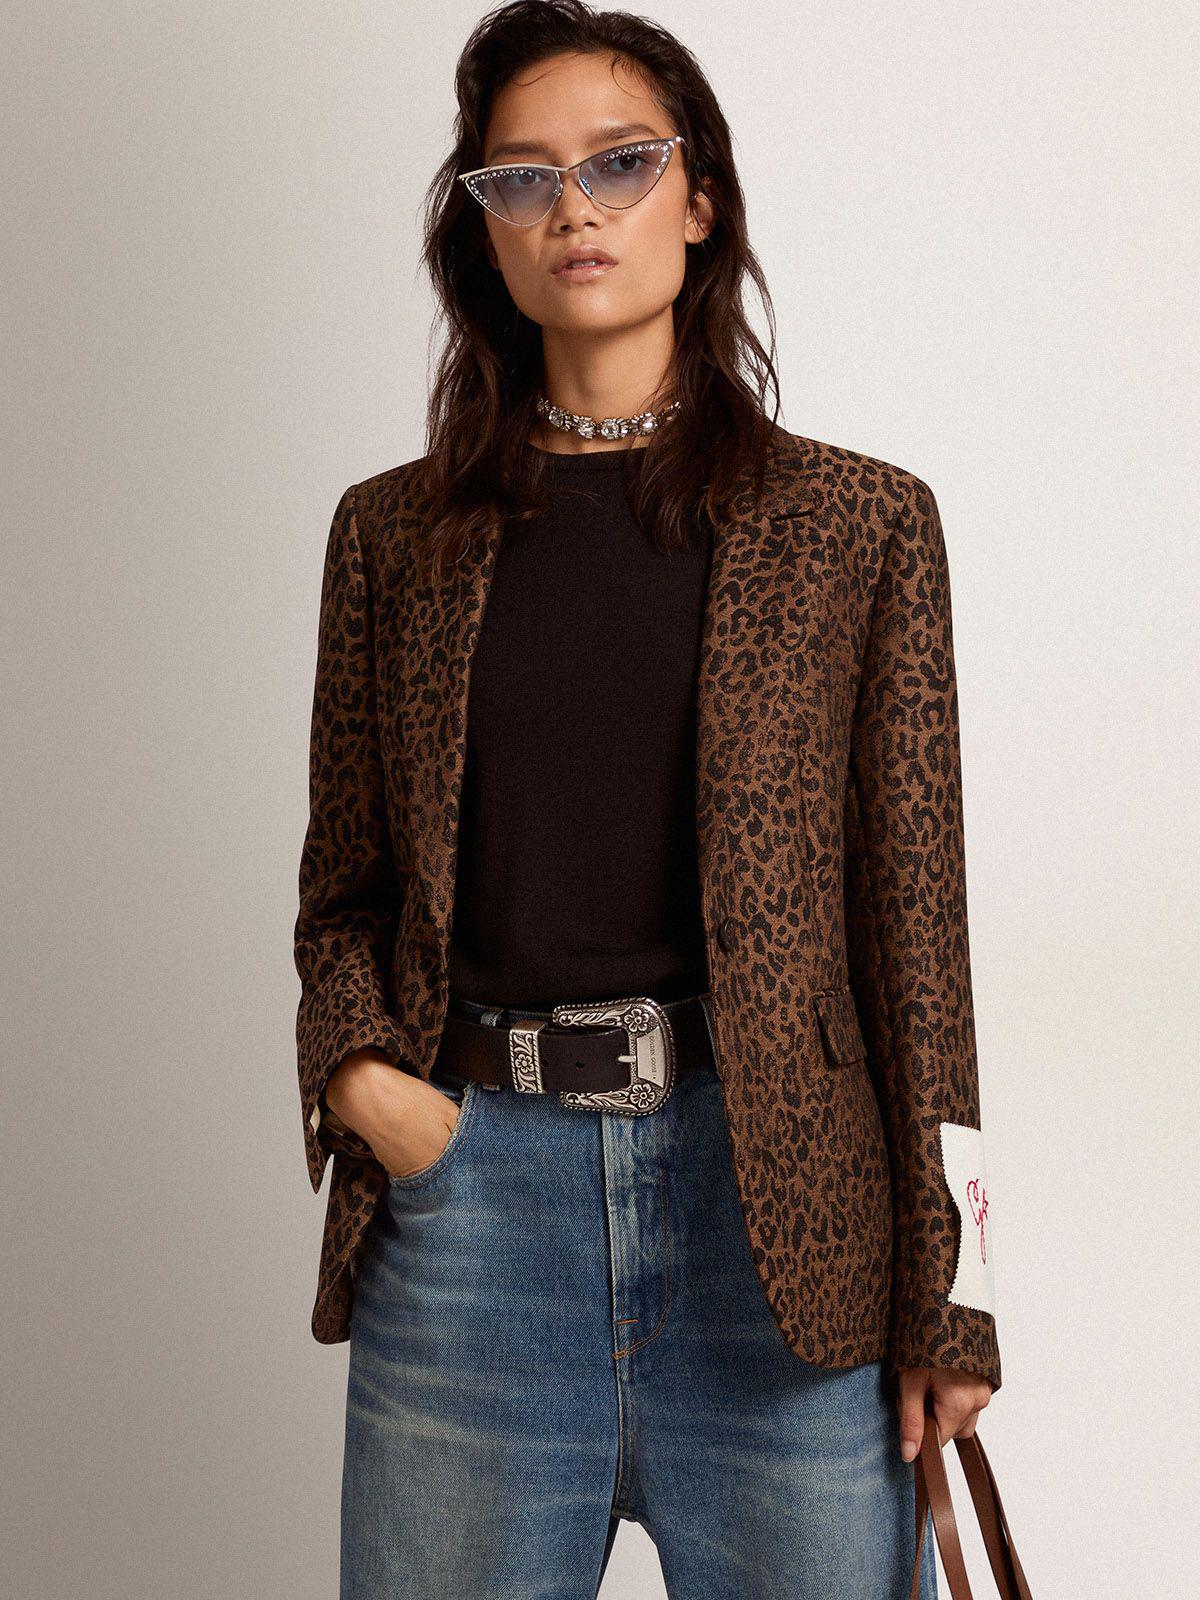 Golden Collection single-breasted blazer in wool with jacquard animal pattern